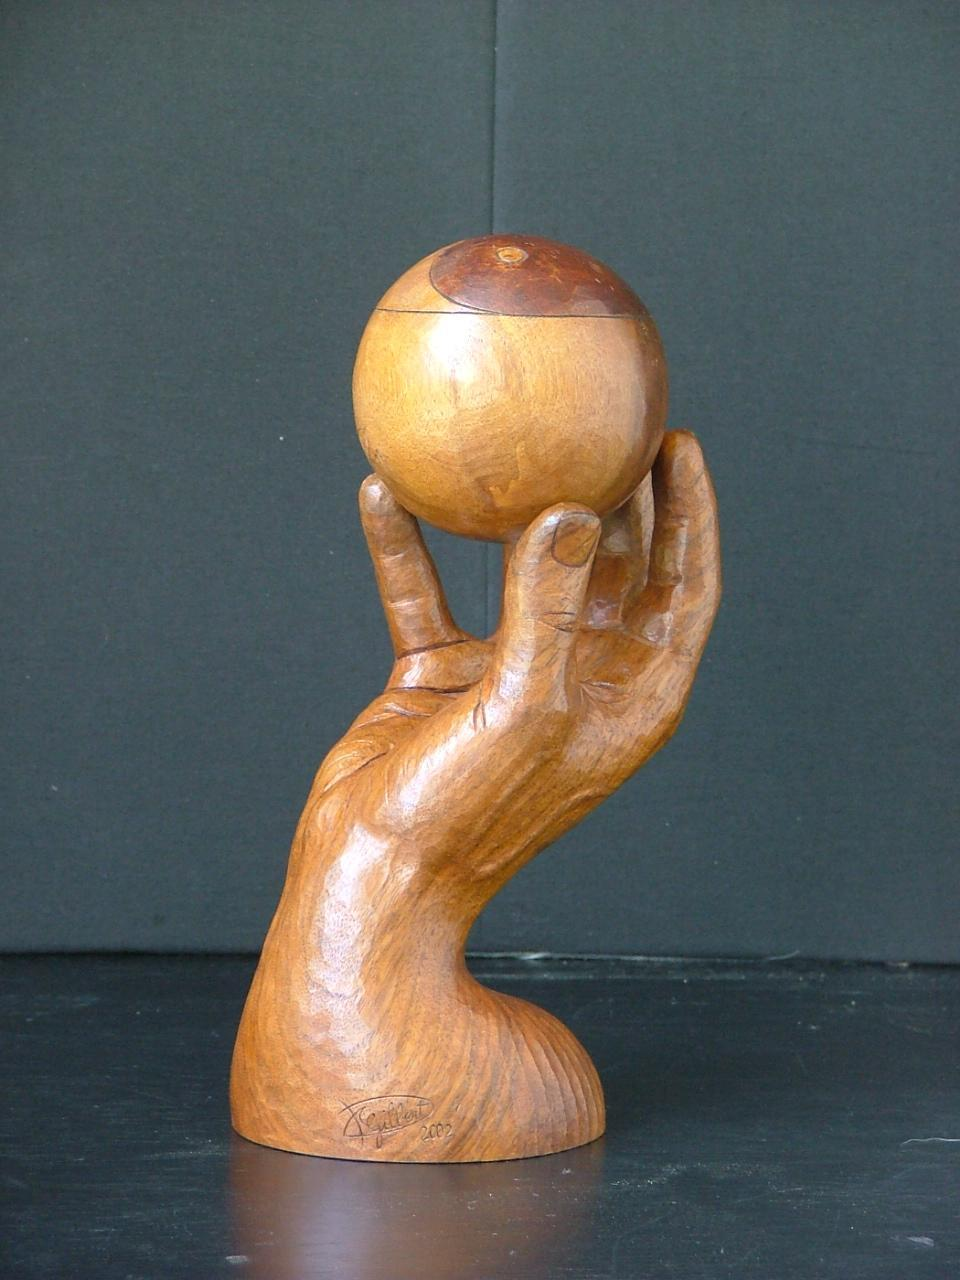 Sculpture contemporaine - Une main tenant une boule